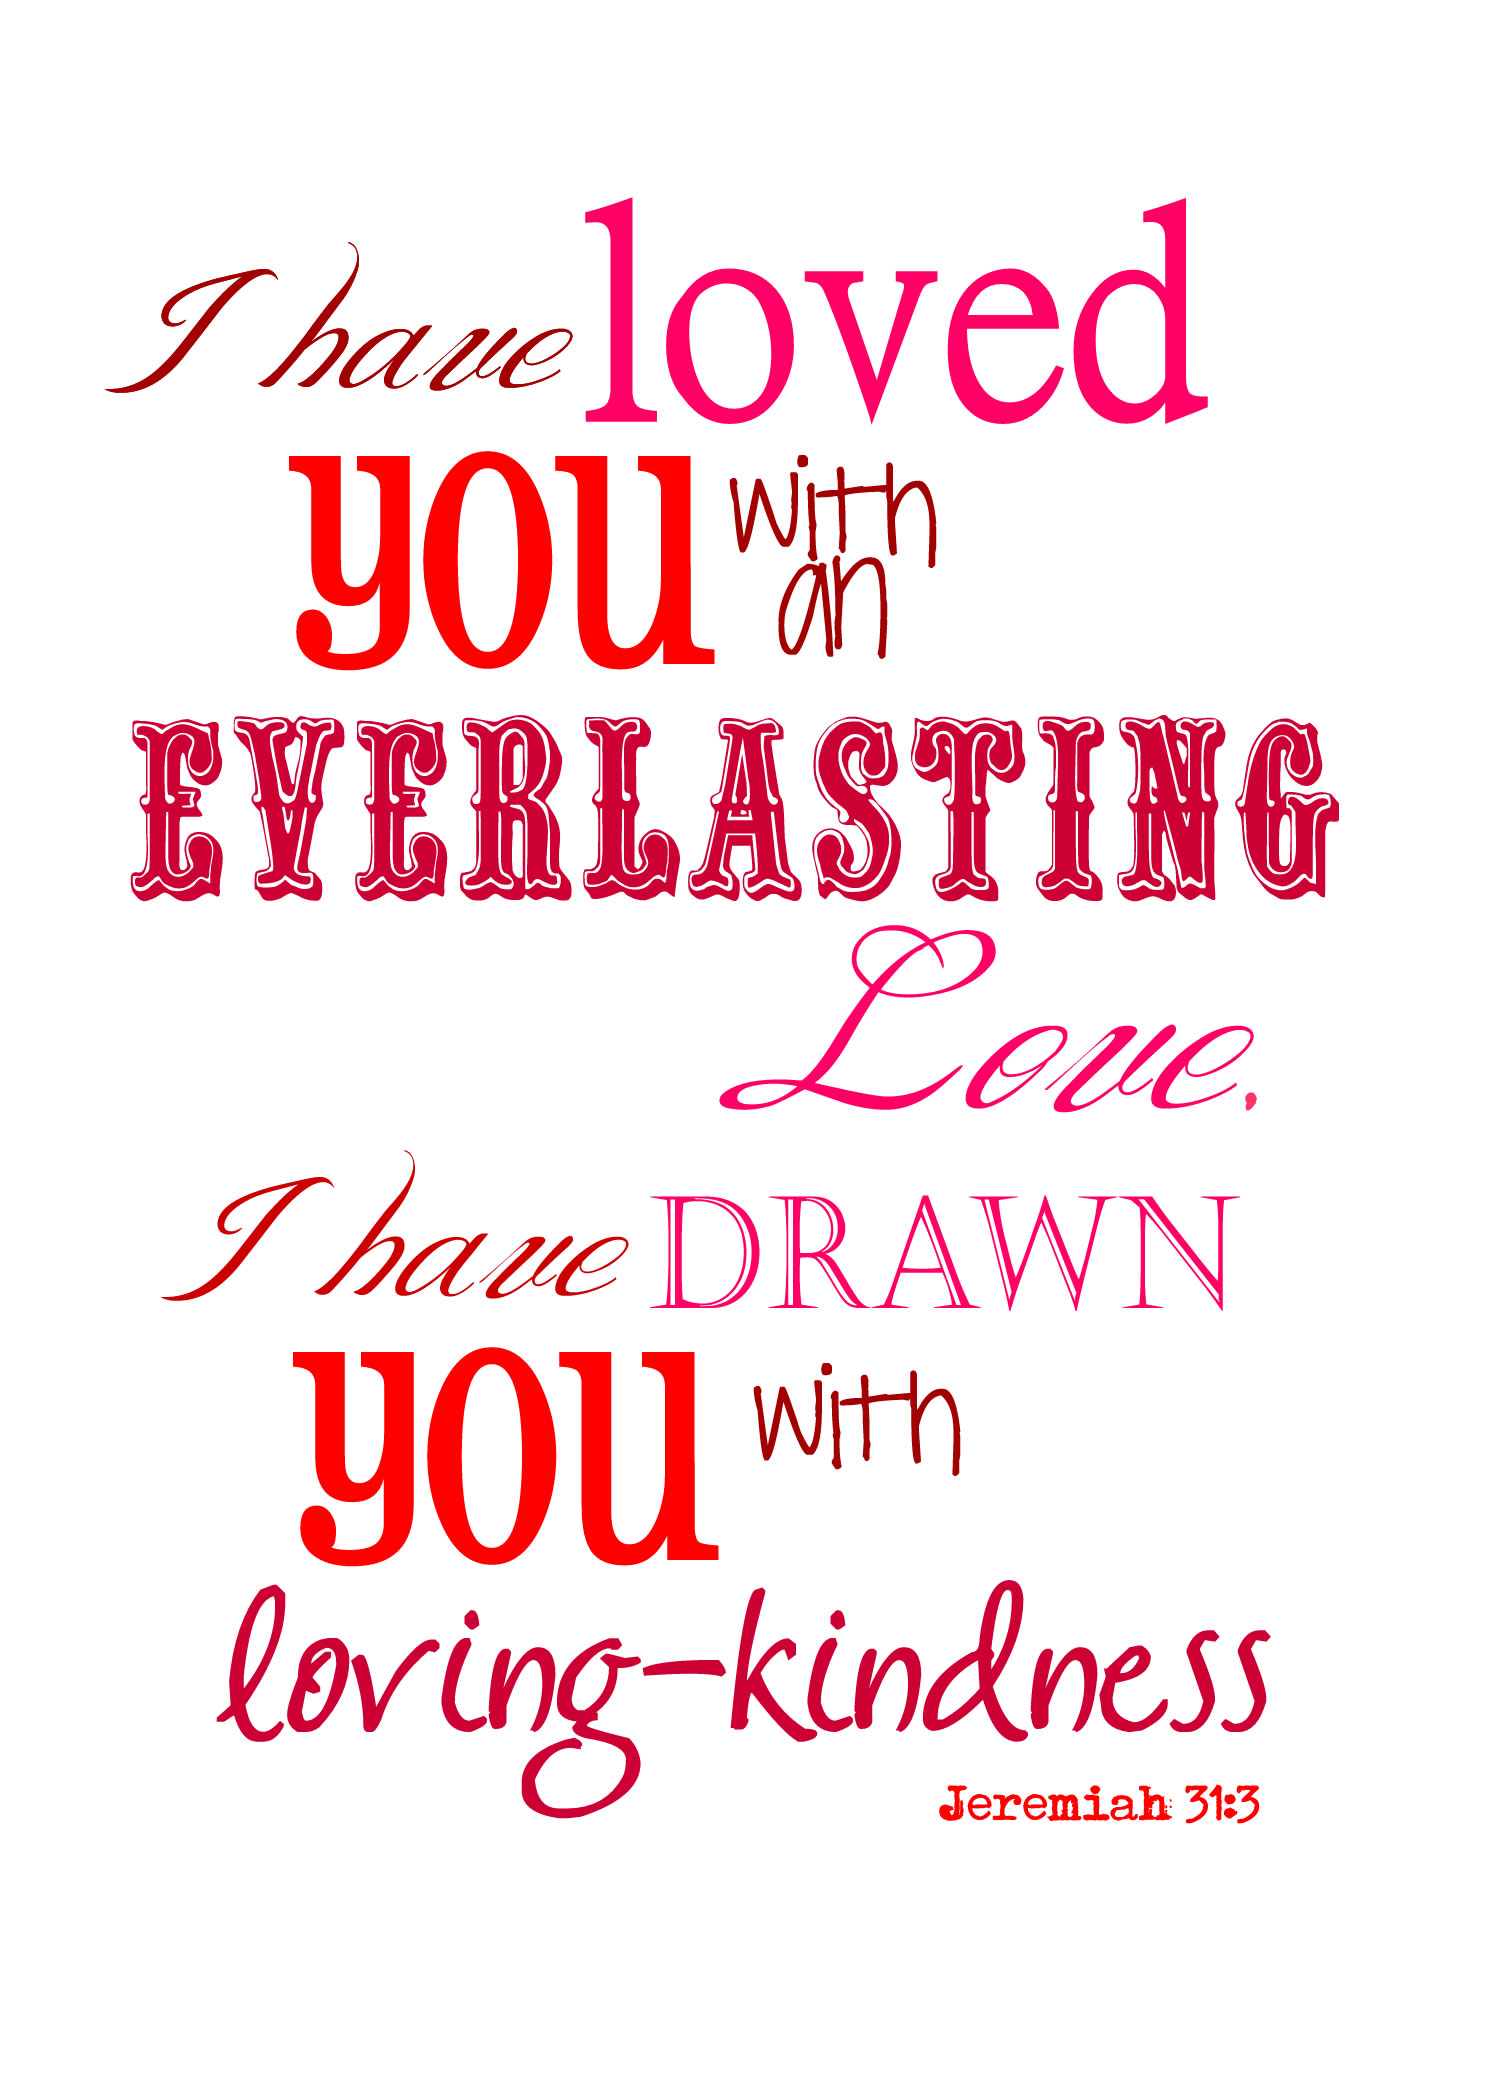 God LOVES You – Free Printable to Share